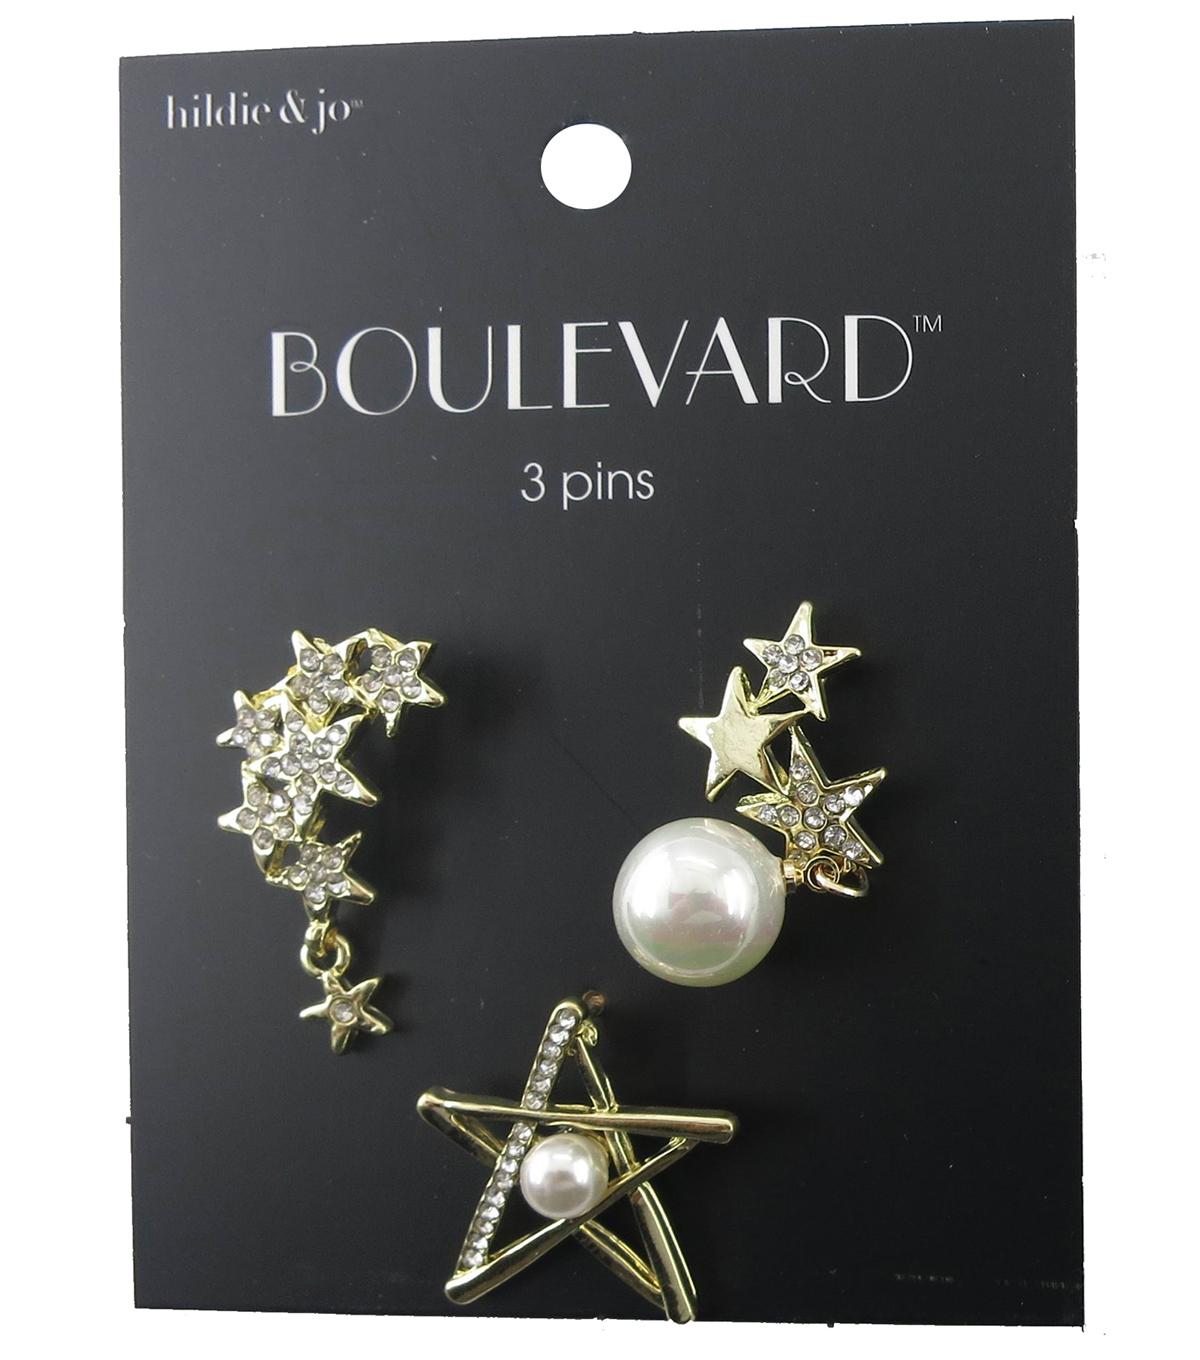 hildie & jo™ Boulevard Star, Pearl Star & Star Cluster Gold Pins